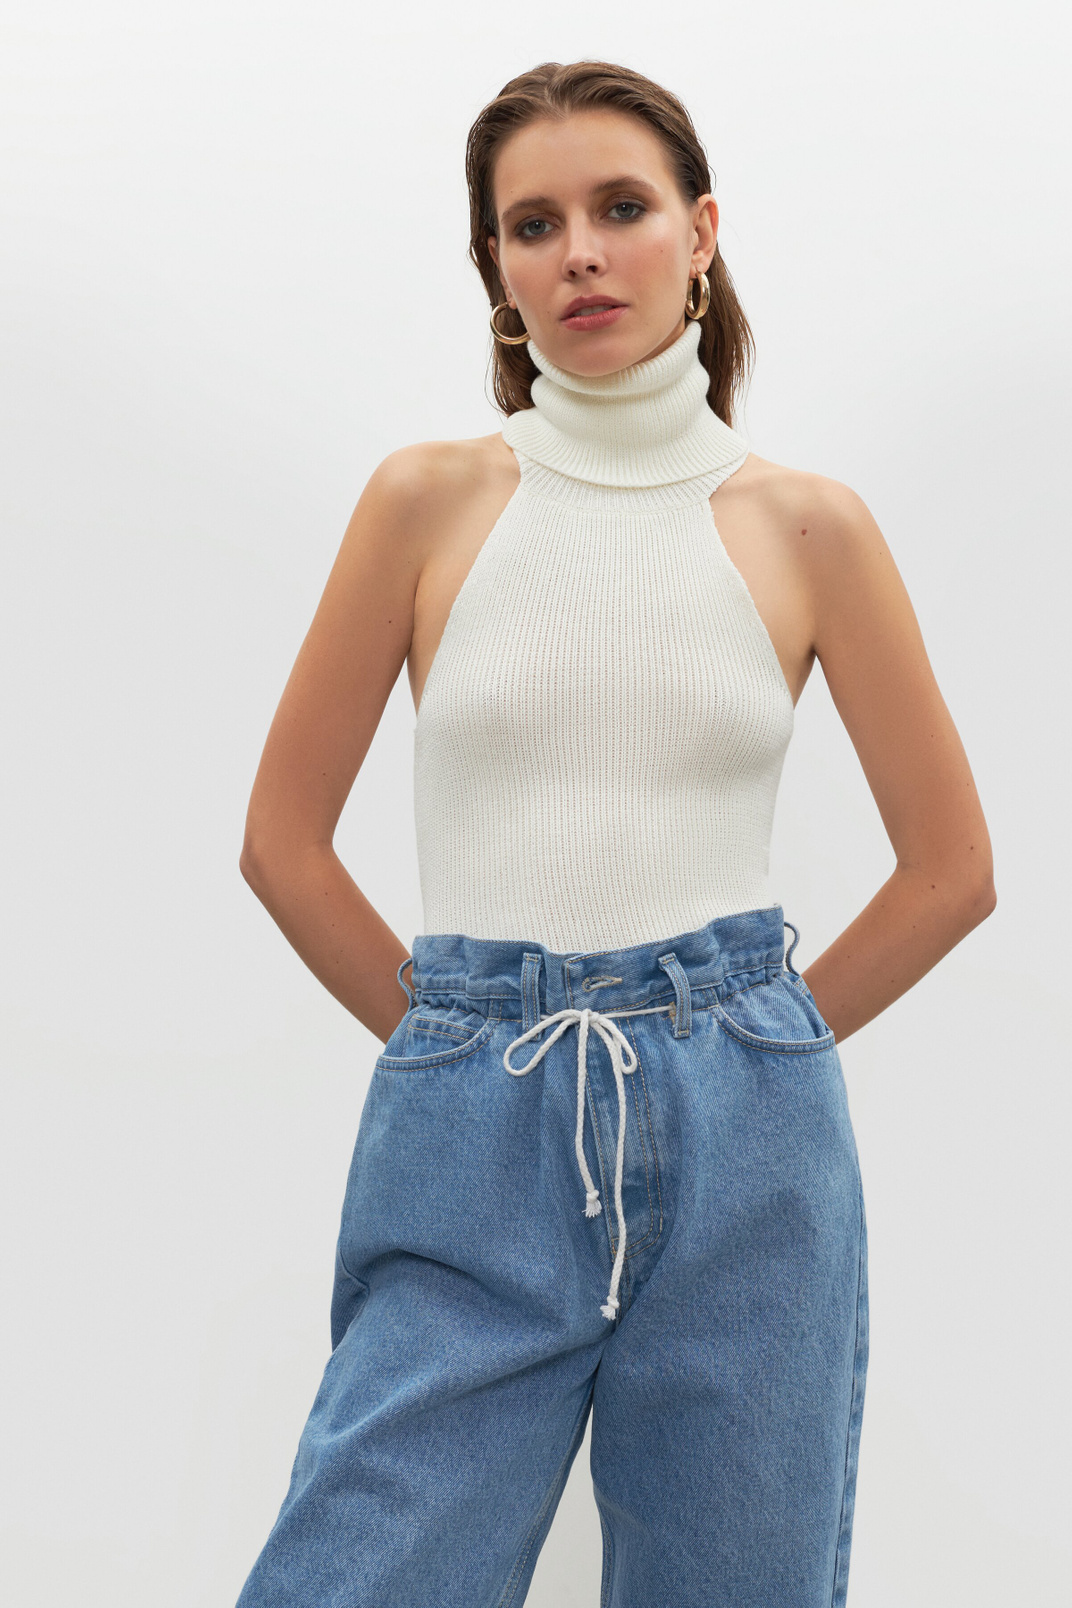 Sleeveless turtleneck, Молочний, XS